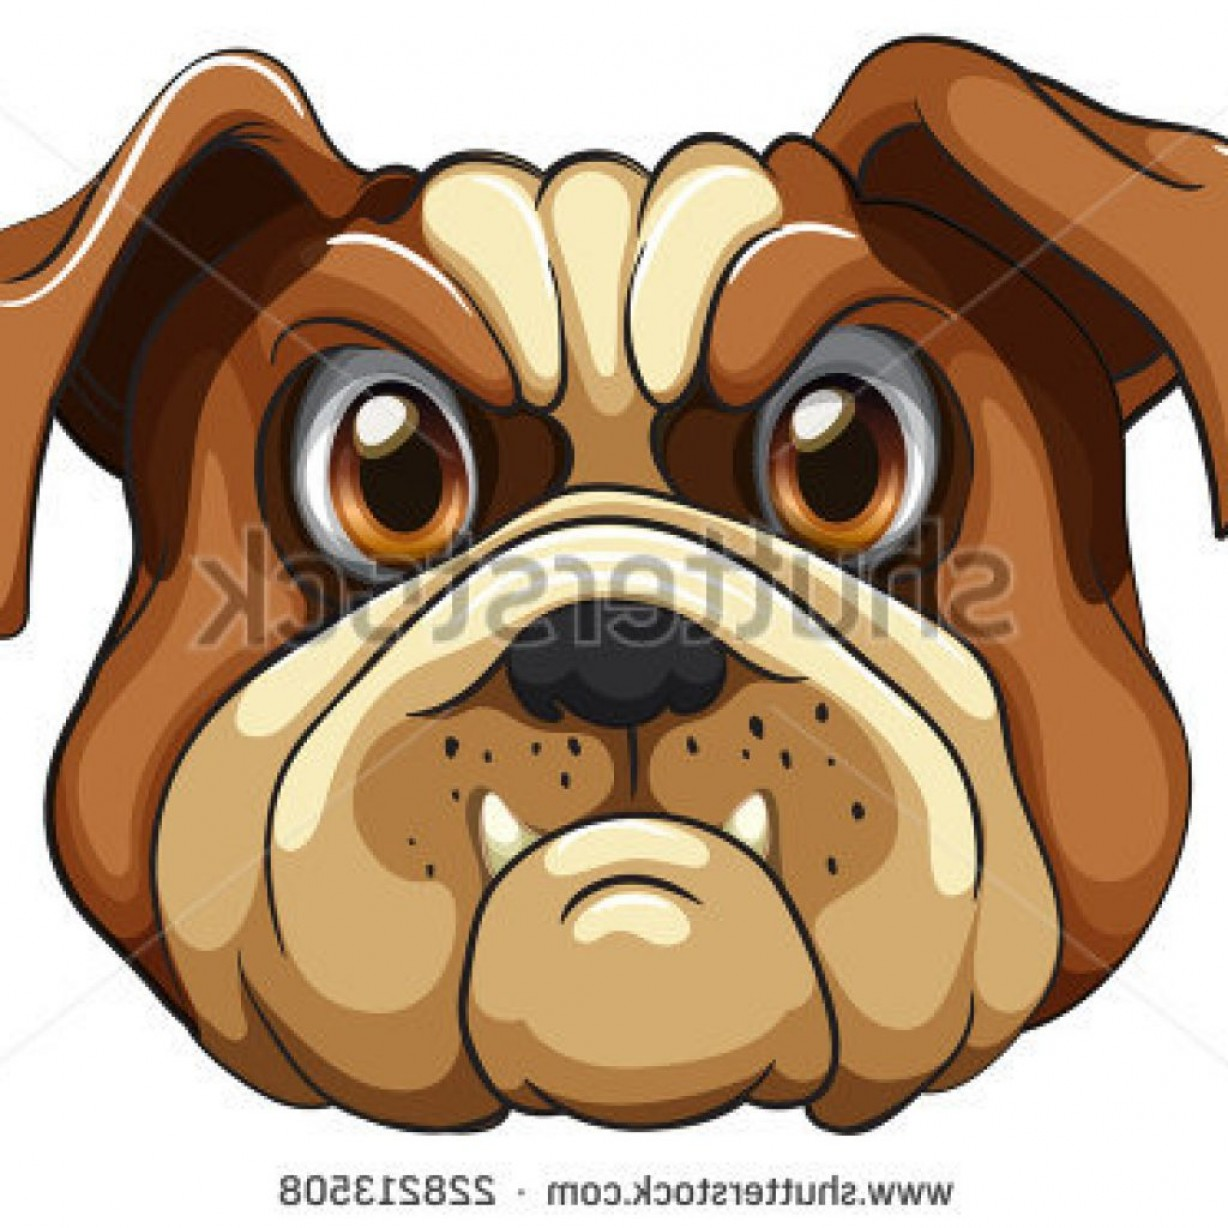 Bulldog Vector Art: Pictures Of Cartoon Bulldogs Monkey Clipart